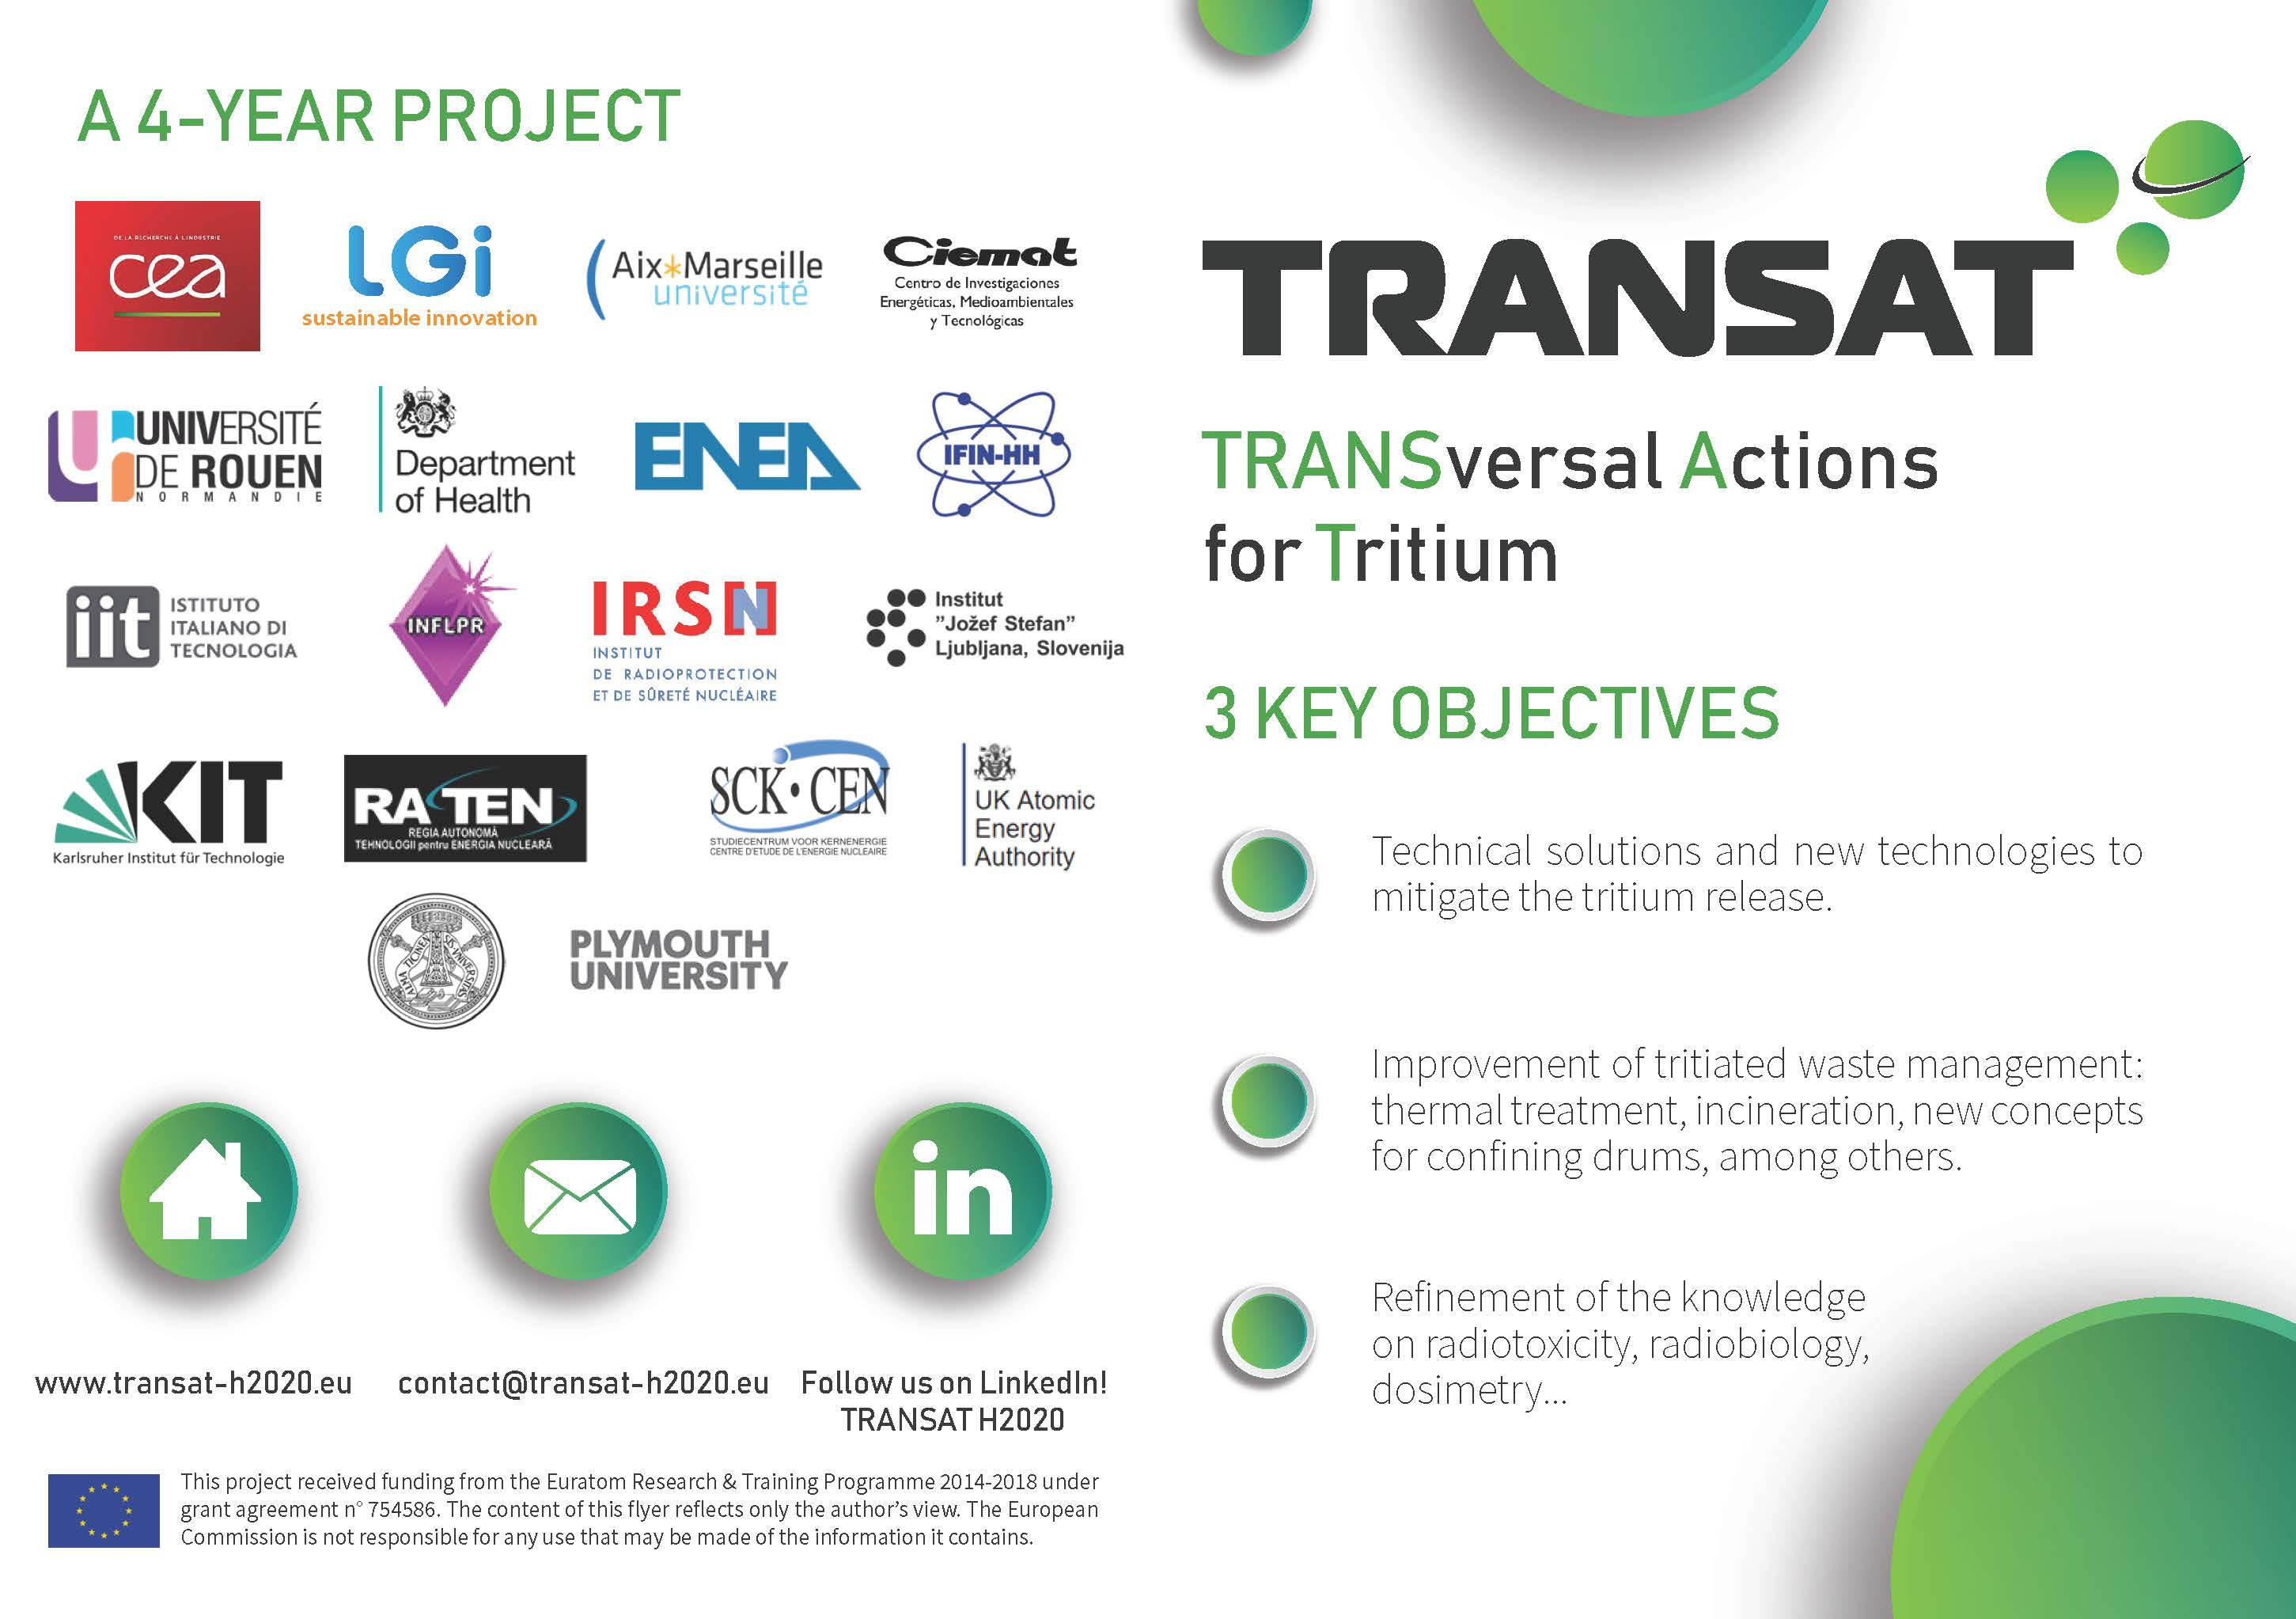 A graphic describing the TRANSAT research consortium